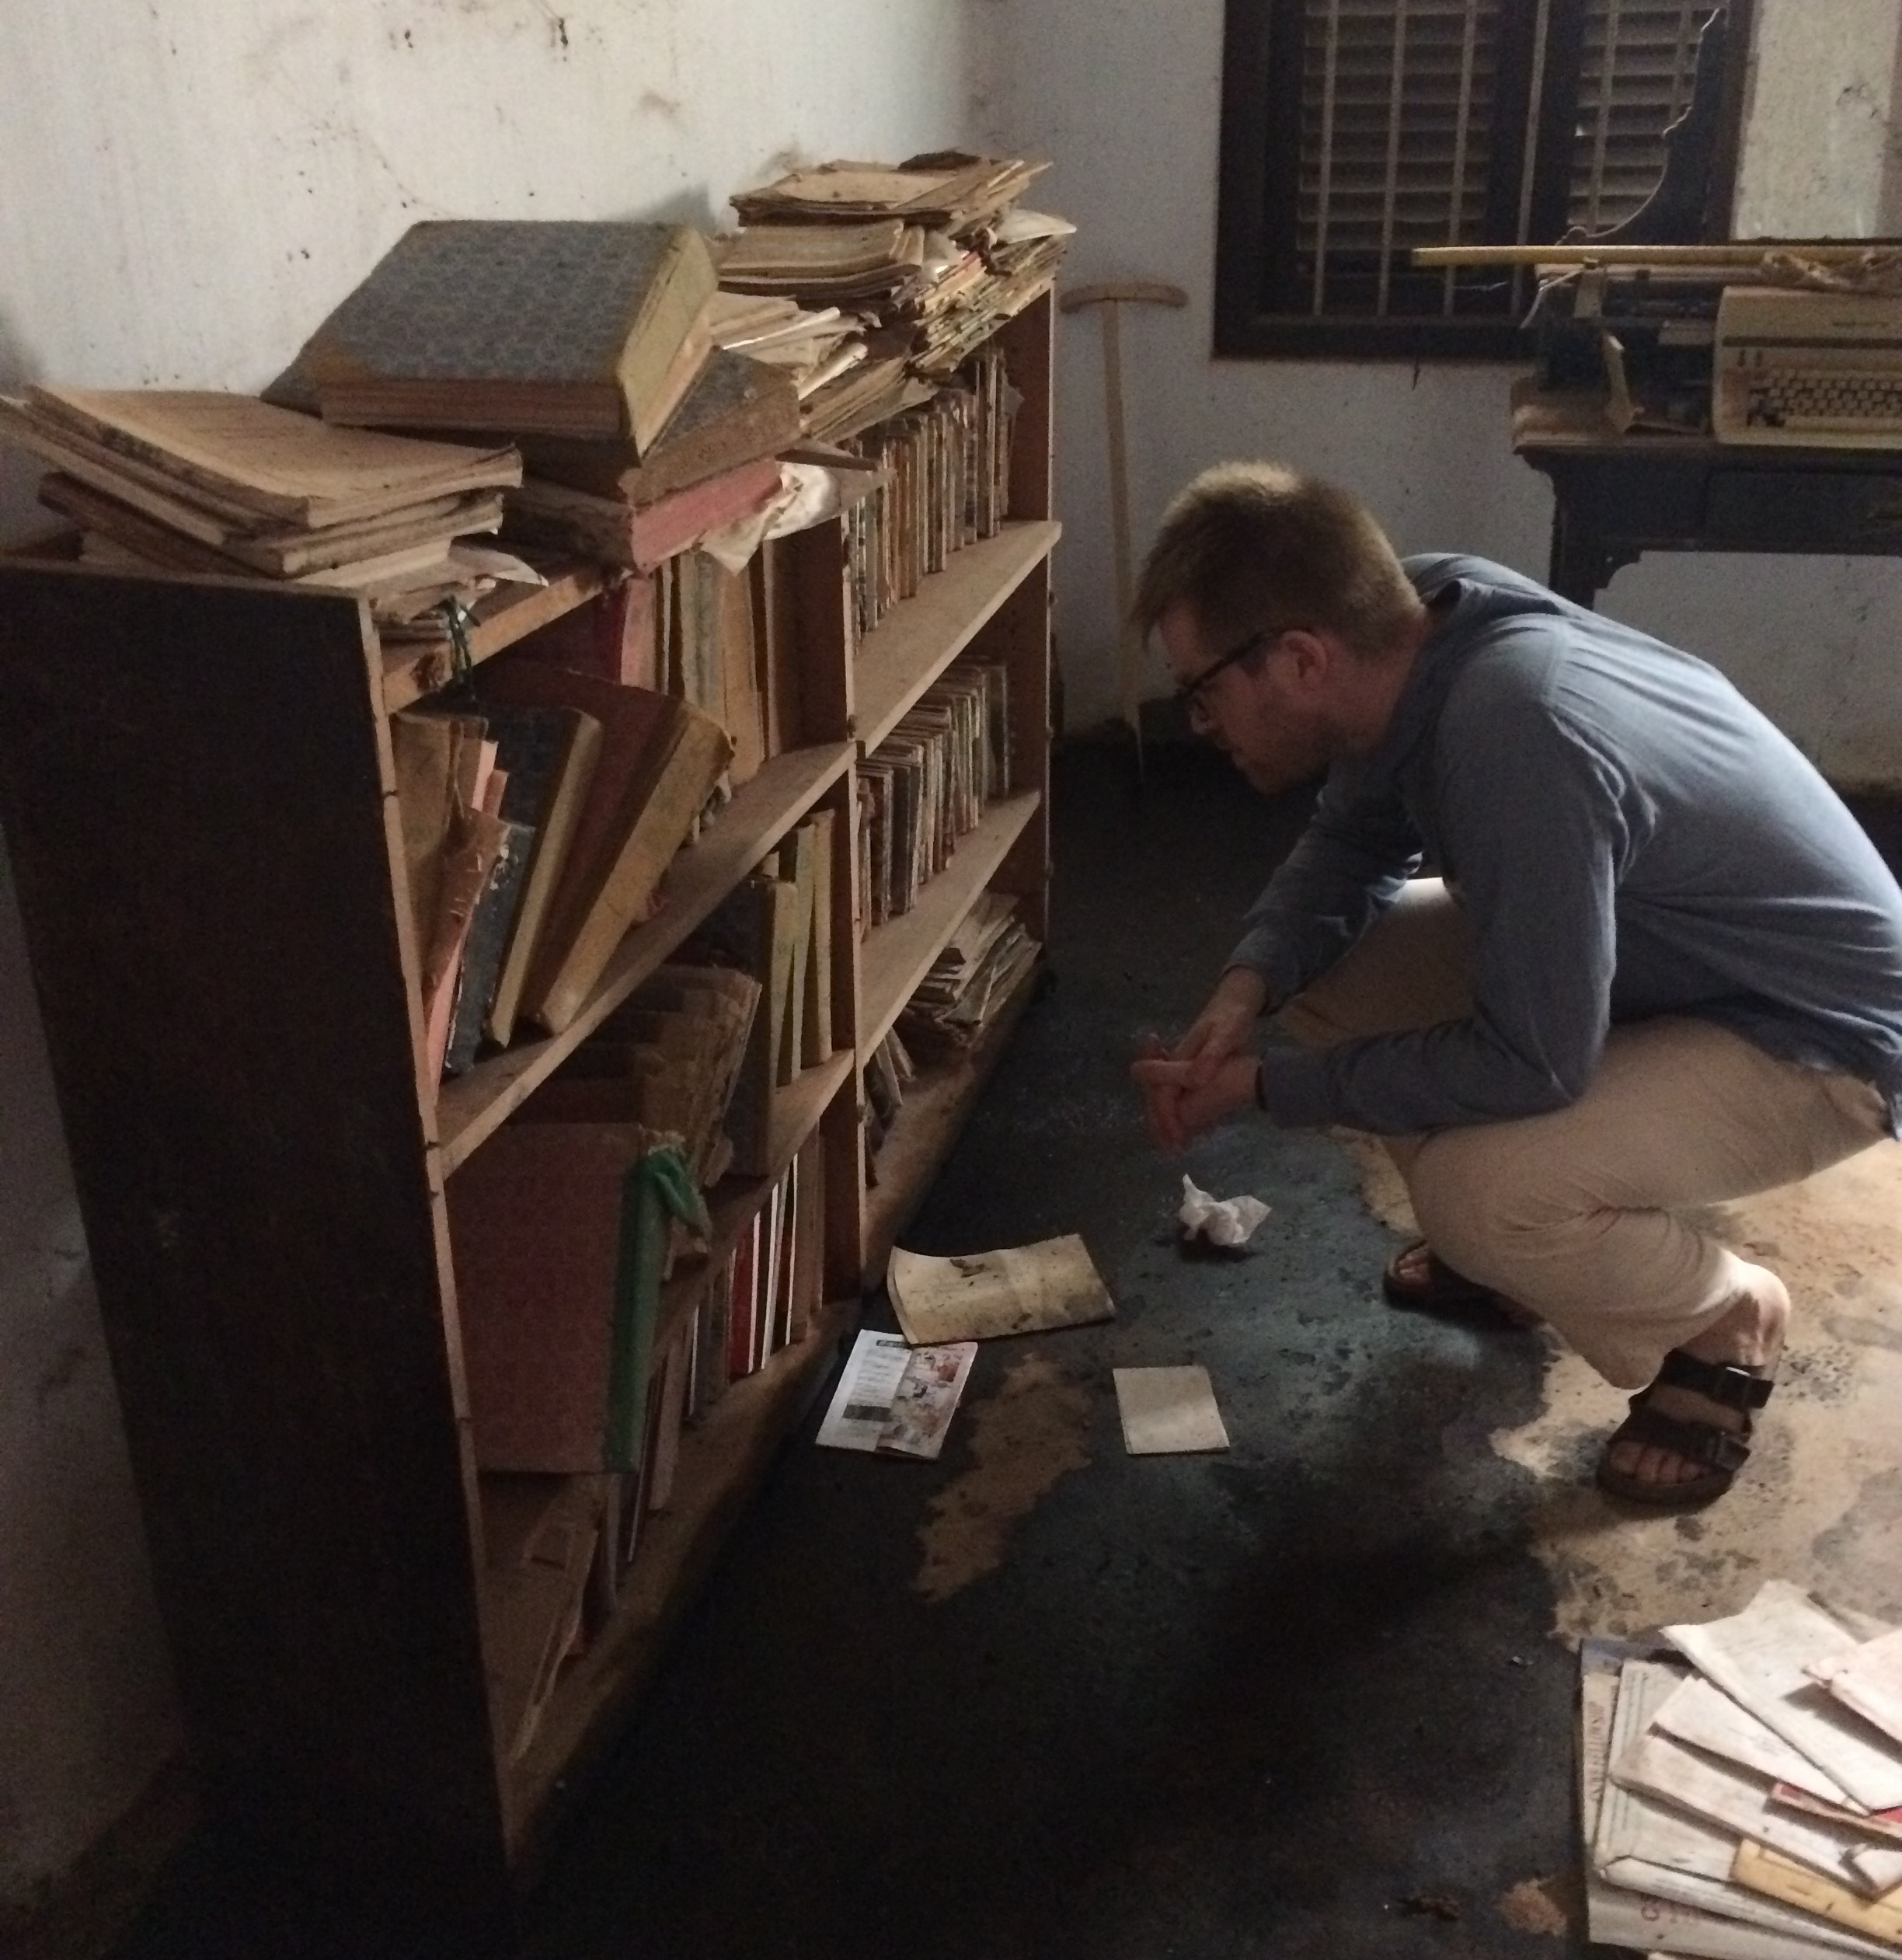 The team conducted twelve surveys of institutional and privately-held archives. The black liquid on the floor of this archive is motor oil, used as rudimentary protection from insects. Photo Credit: Henria Aton